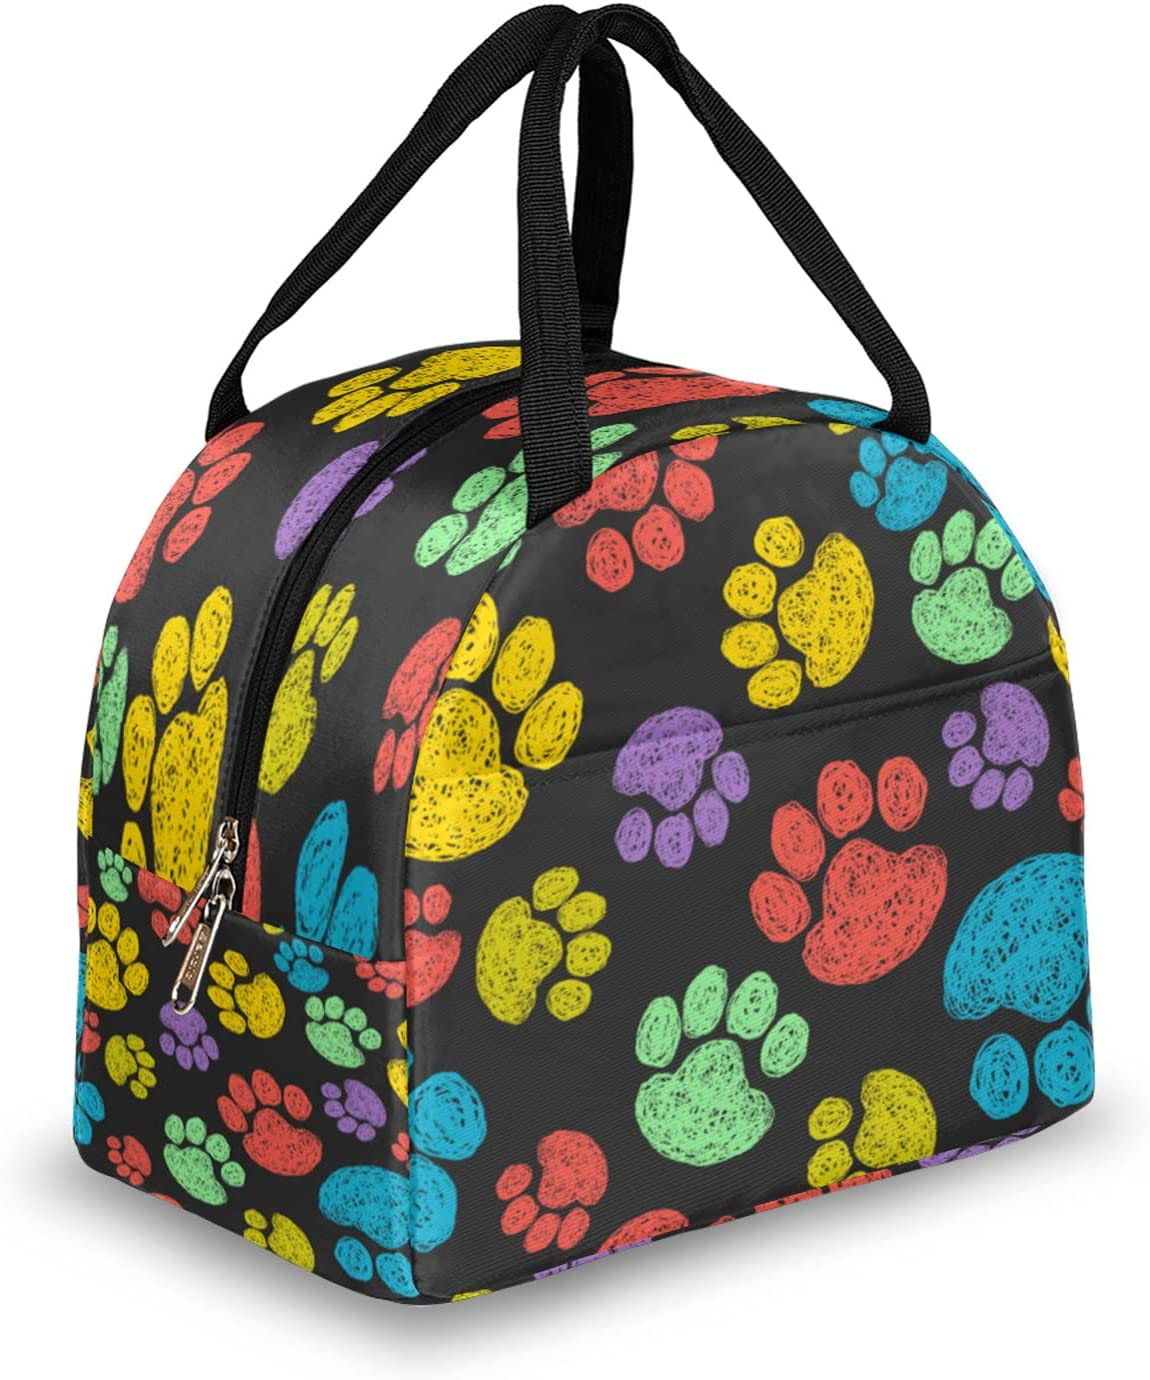 Colorful Dog Paw Max 85% OFF Printed Lunch Insulated Free Shipping New Bo Women for Bag